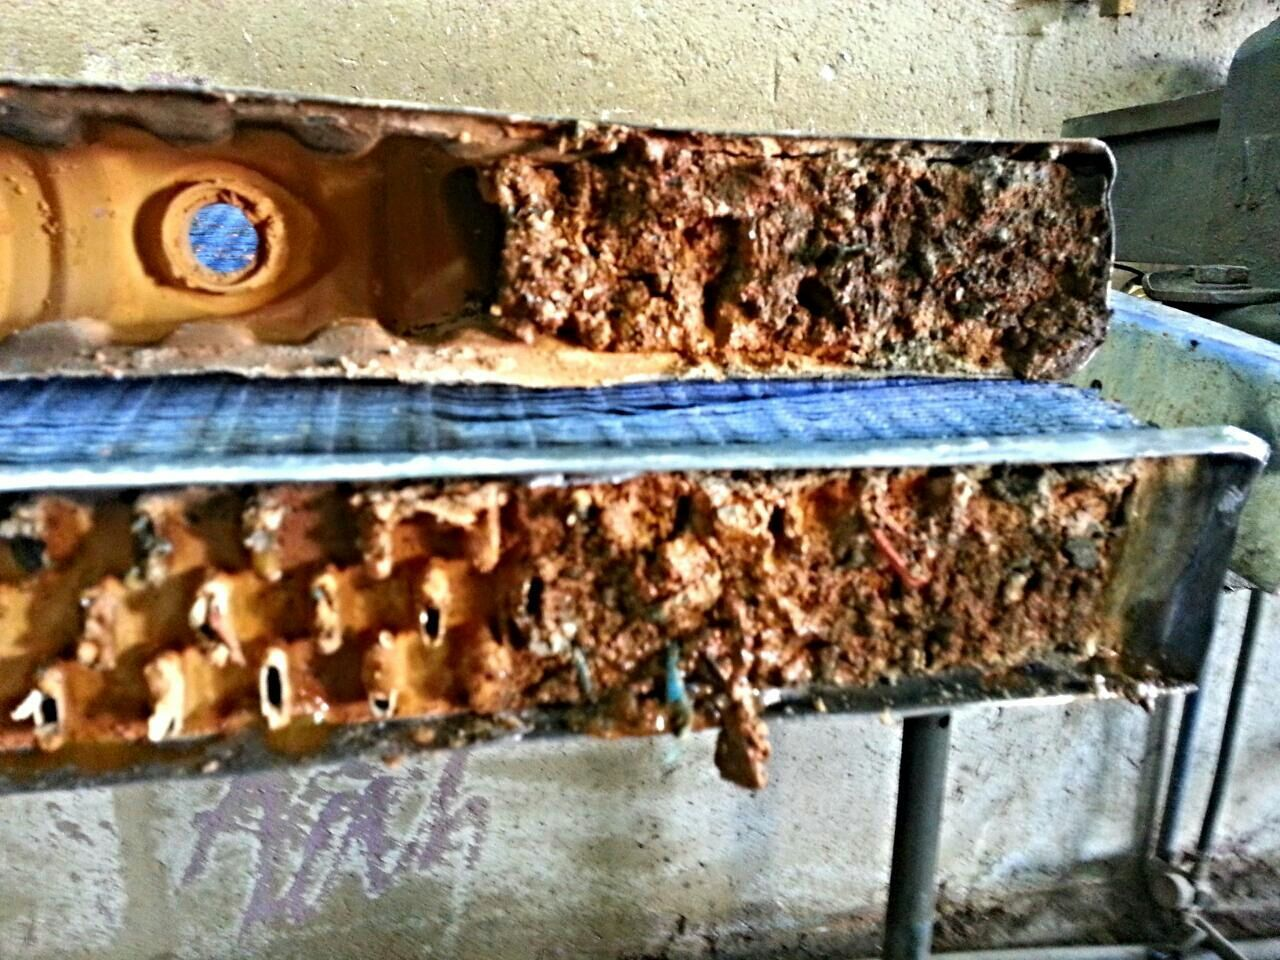 no people, close-up, beehive, day, honeycomb, apiculture, indoors, animal themes